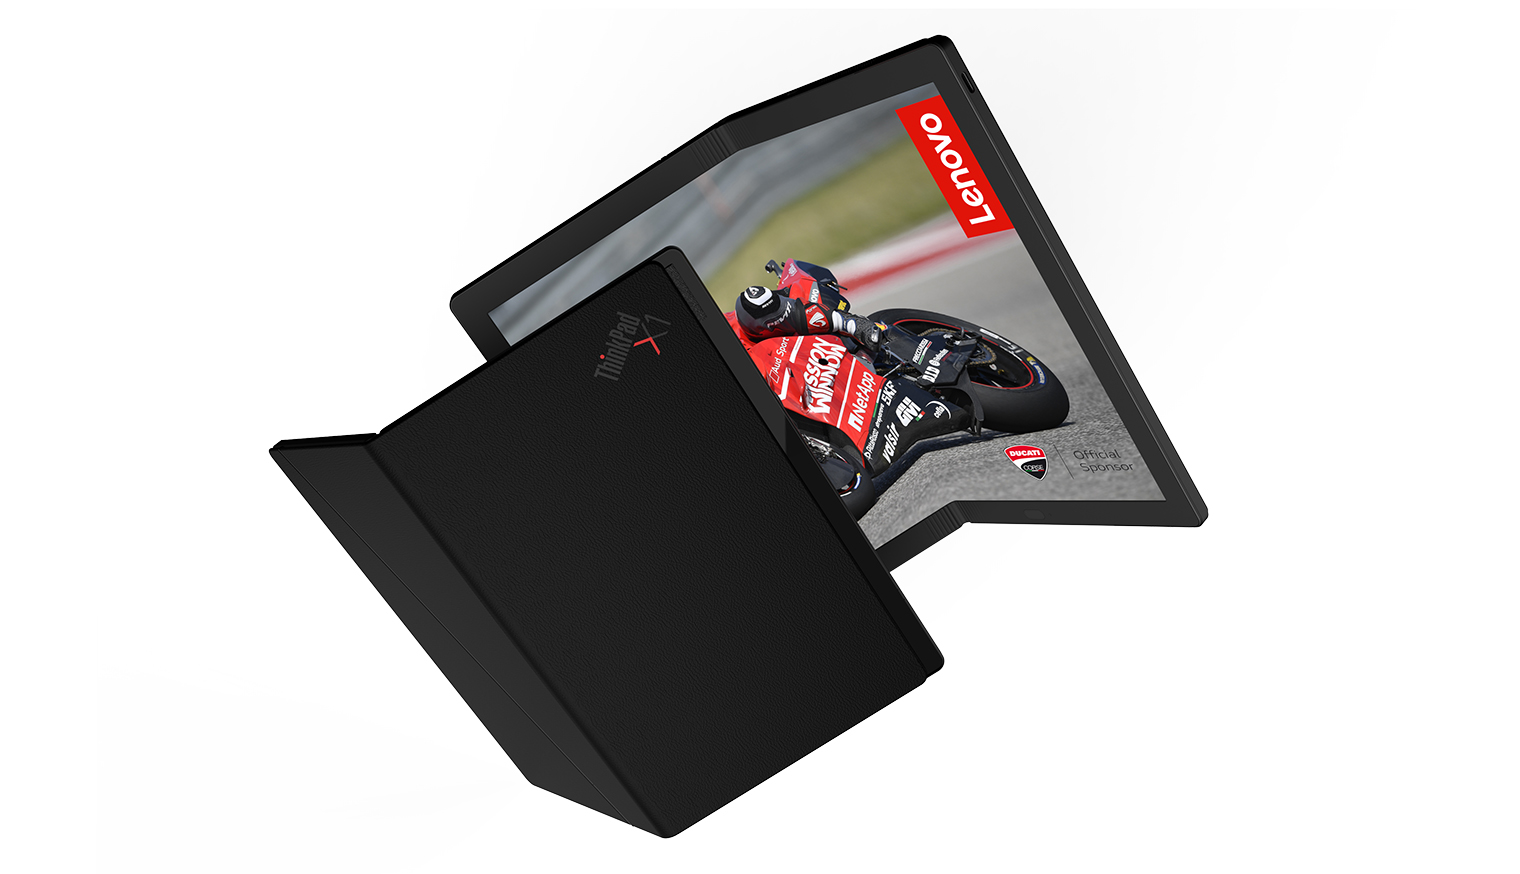 Lenovo Previewed ThinkPad X1 Foldable PC Tablet - May come